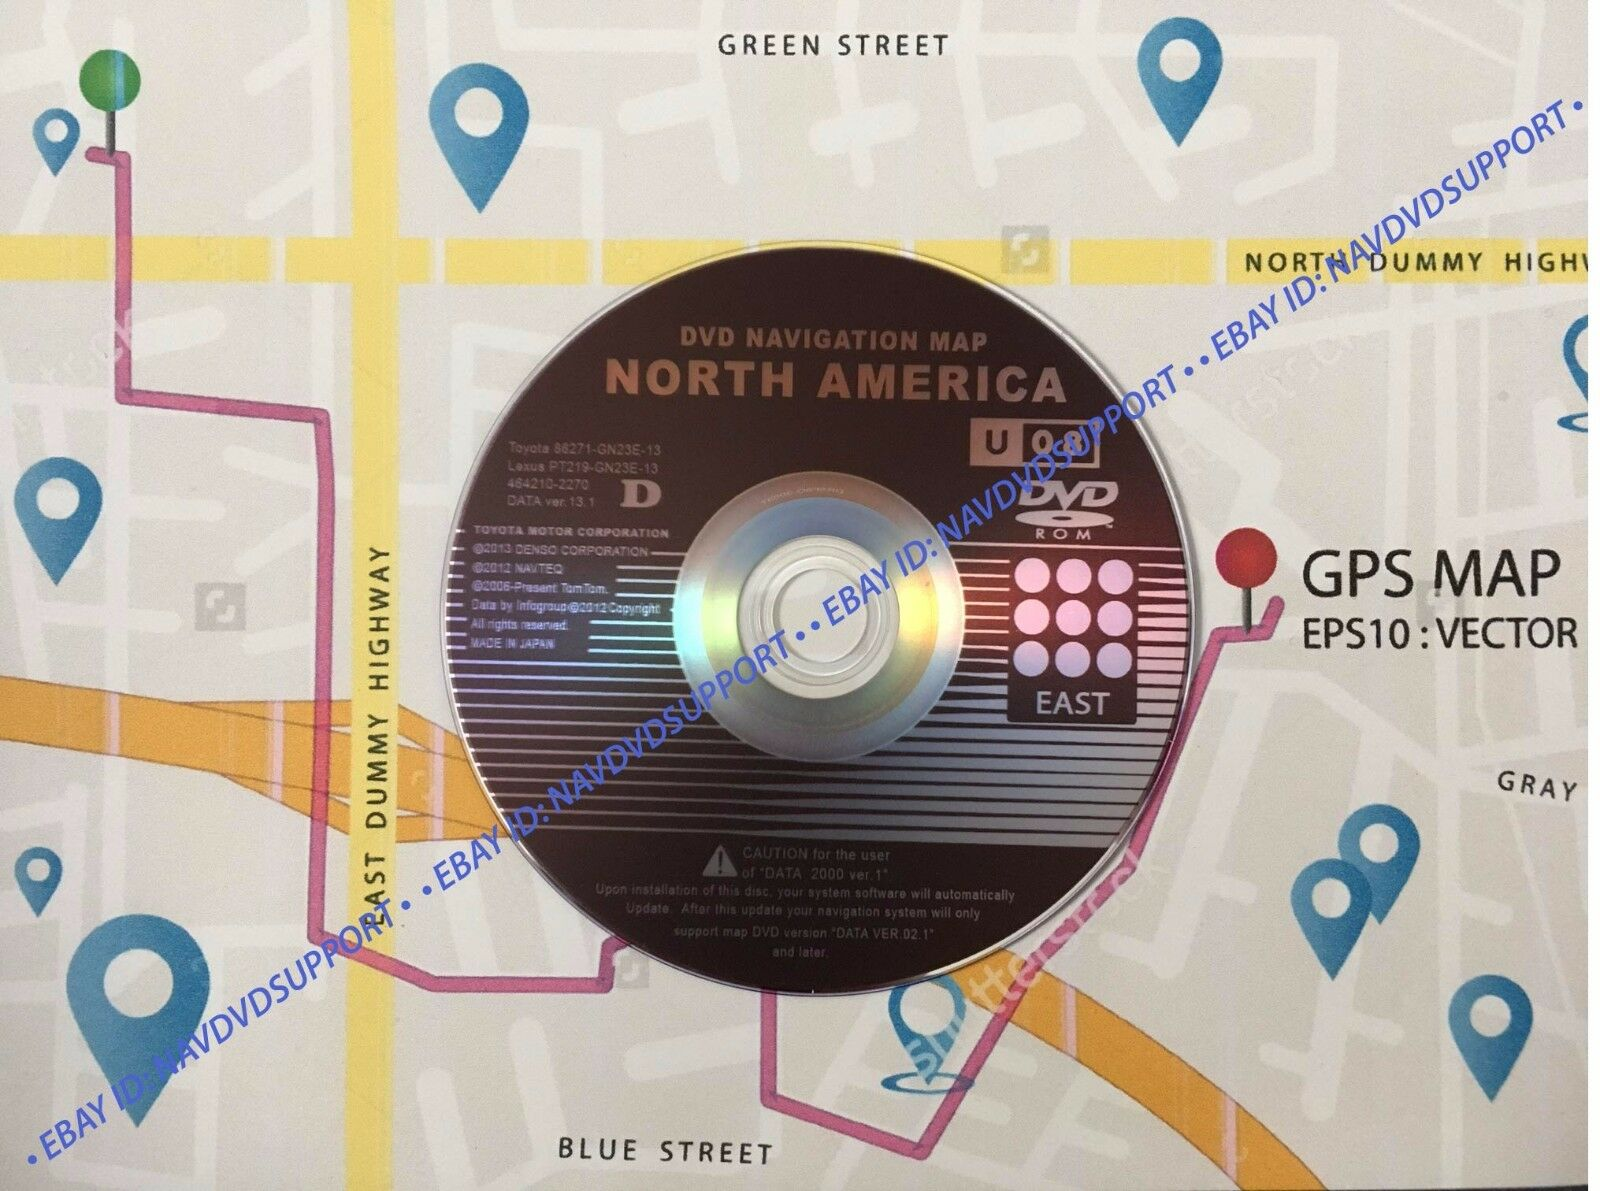 NEW LATEST Toyota Lexus U08 13.1 Navigation GPS Map Update DVD Gen 2/3 EAST  1 of 2FREE Shipping NEW LATEST Toyota Lexus U08 13.1 Navigation ...